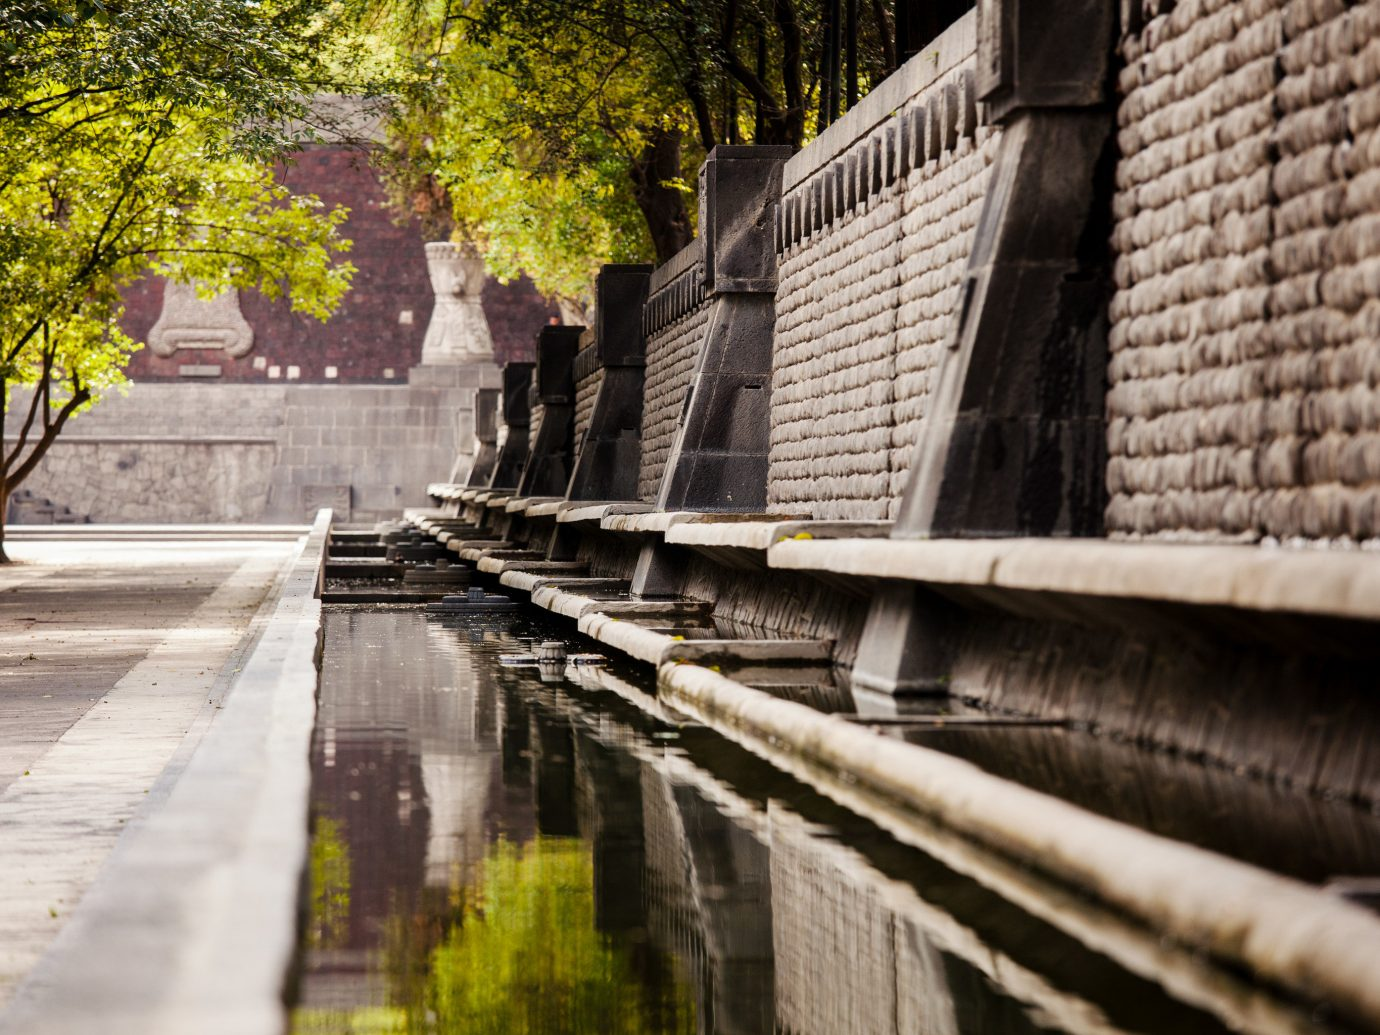 Arts + Culture Mexico City Travel Tips Trip Ideas water reflection outdoor waterway wall Town tree Canal road alley street plant sidewalk wood way City lane building facade lined stone